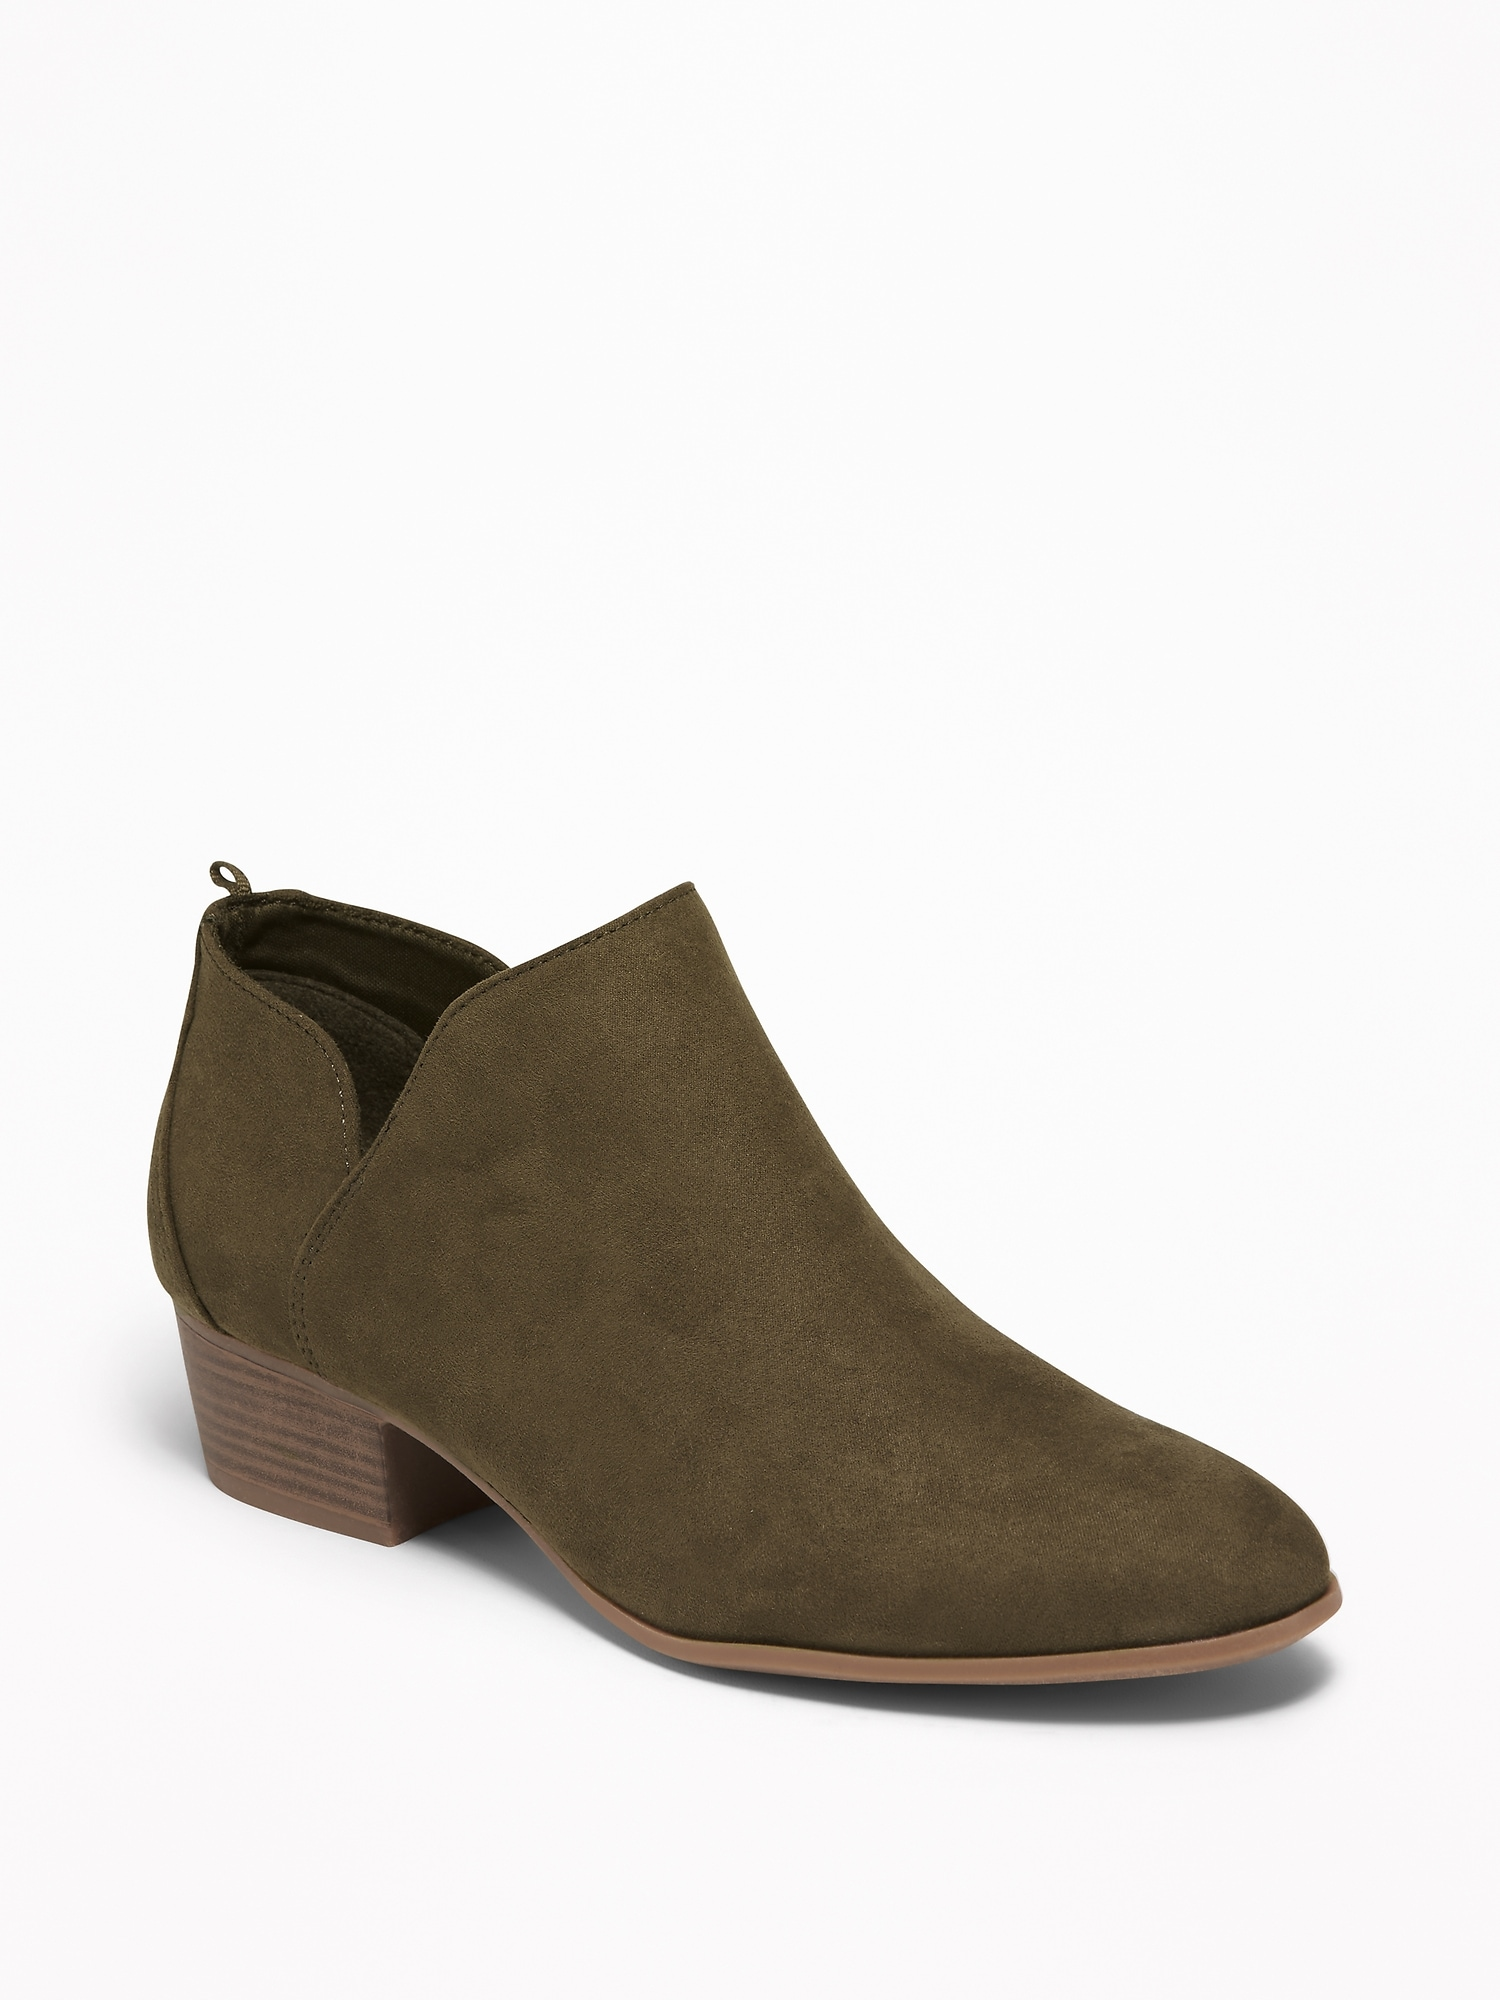 76f24e12a71e Faux-Suede Low-Heel Booties for Women